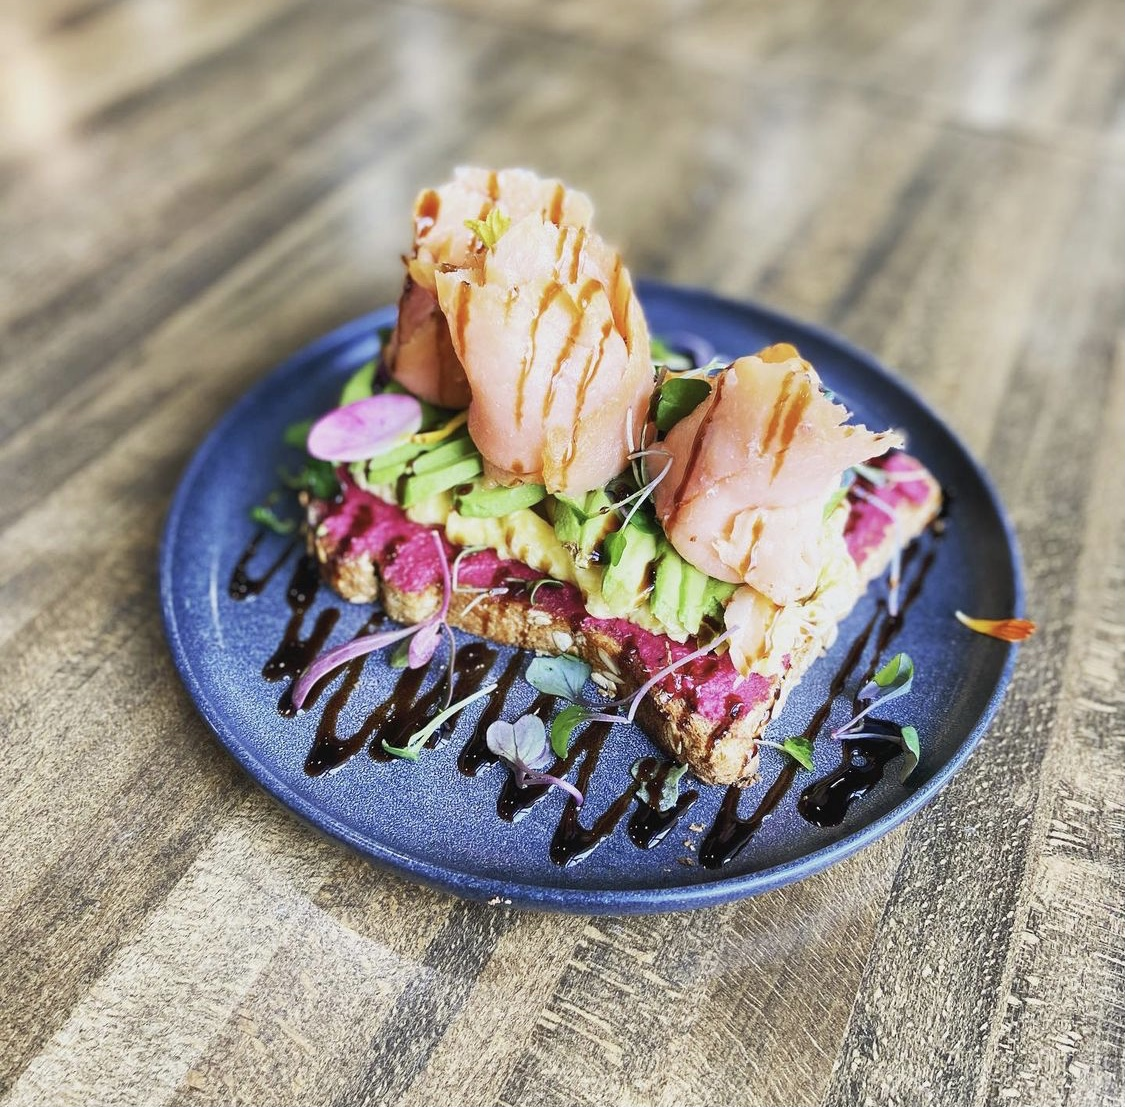 the sunrise toast from the nest, made with house-made beet hummus, scrambled egg, avocado, smoked salmon and a balsamic glaze. a favorite among healthy places to eat in frisco!   via @thenestcafetx on instagram